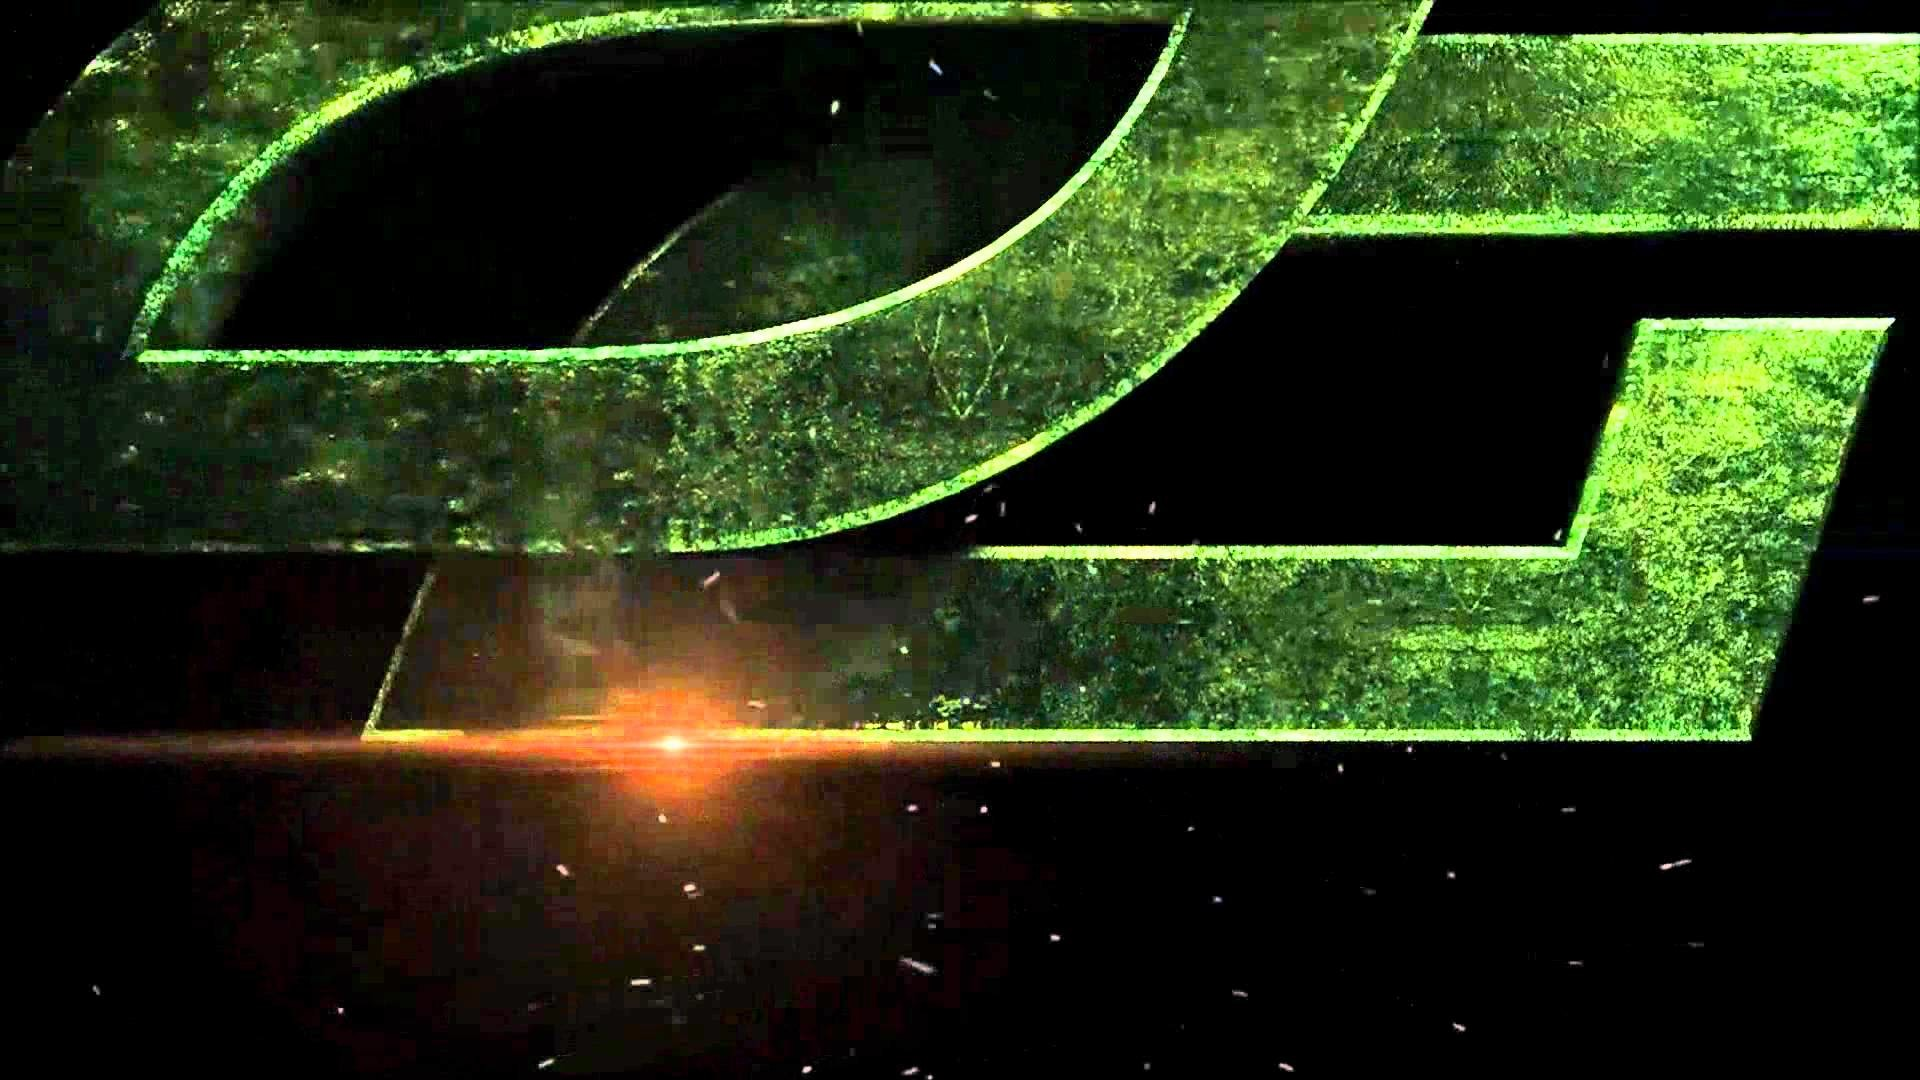 Free Optic Gaming Wallpapers | Wallpapers, Backgrounds, Images .